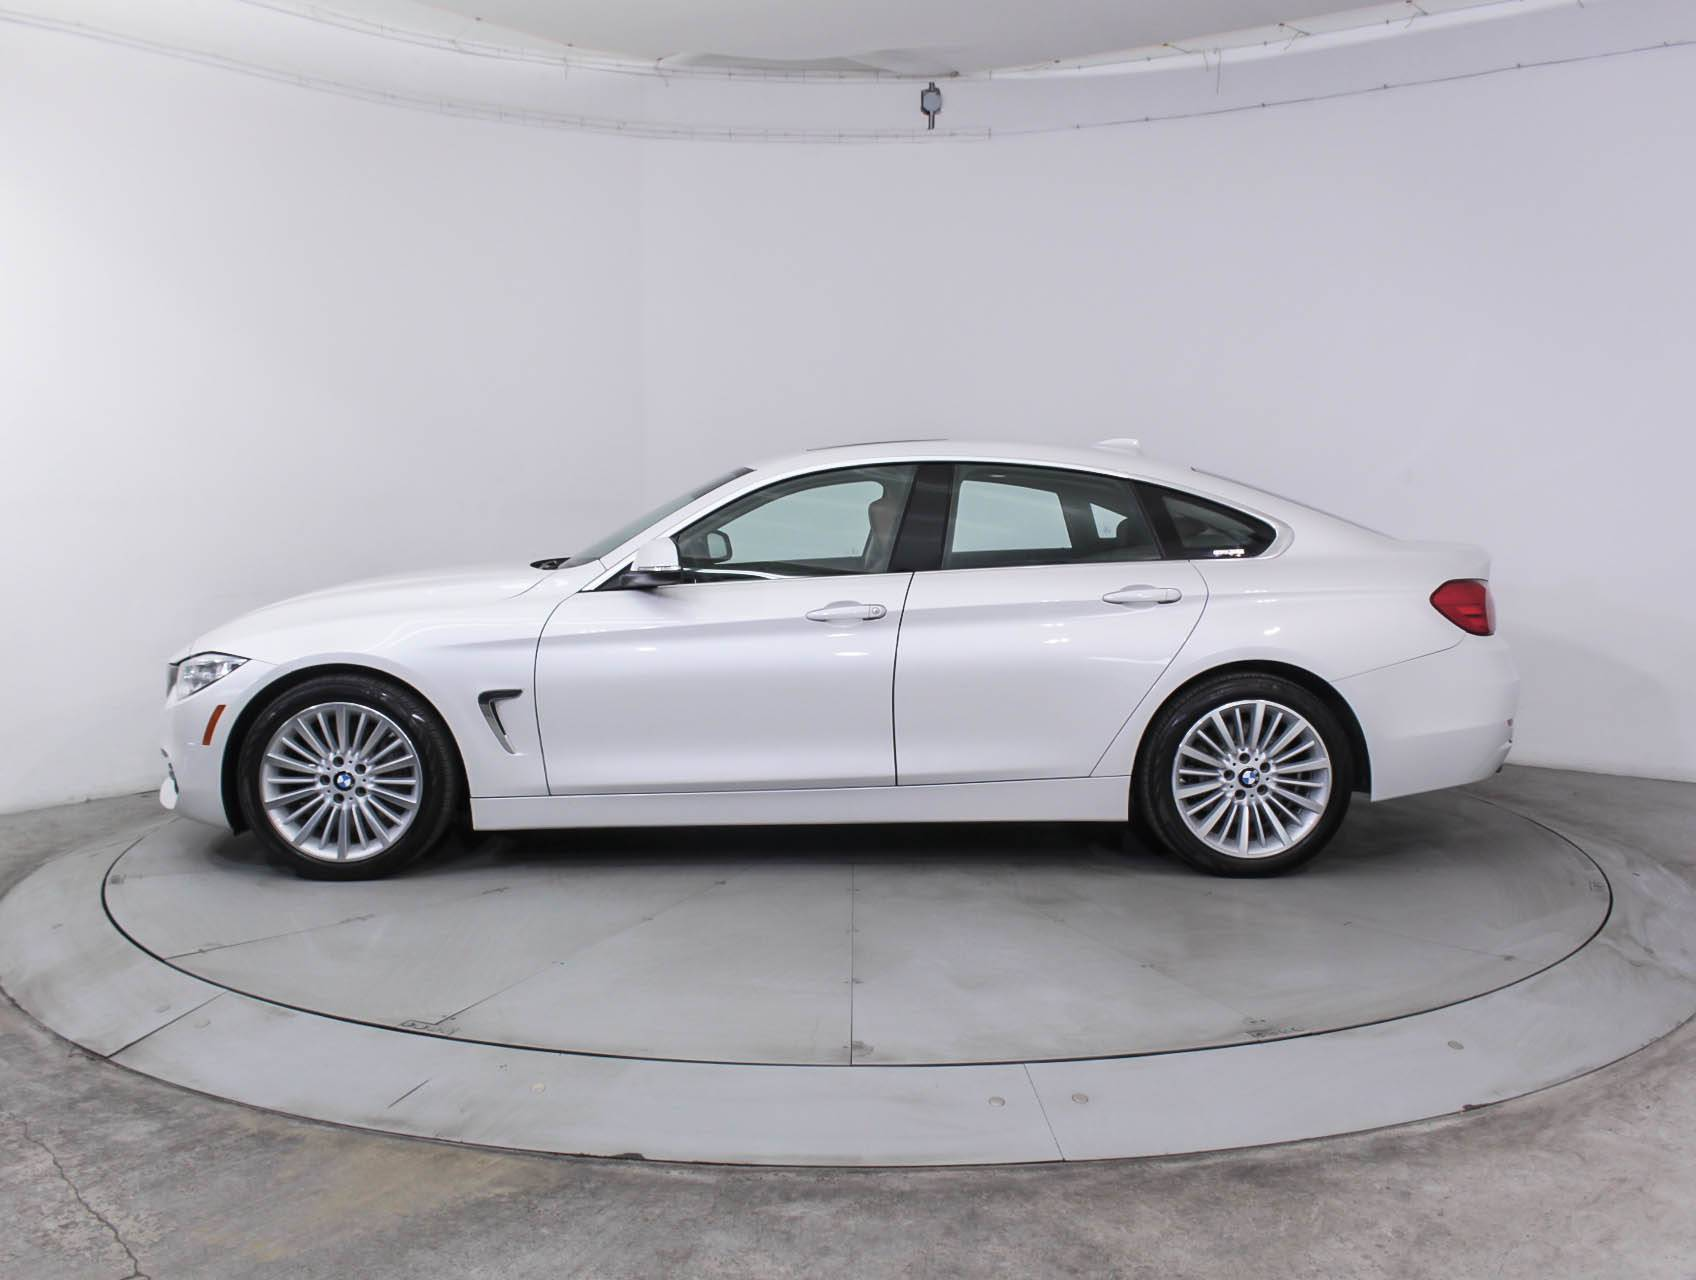 Used 2015 Bmw 4 Series 435i Gran Coupe Sedan For Sale In Hollywood Mineral Grey 428i Fl 88978 Florida Fine Cars